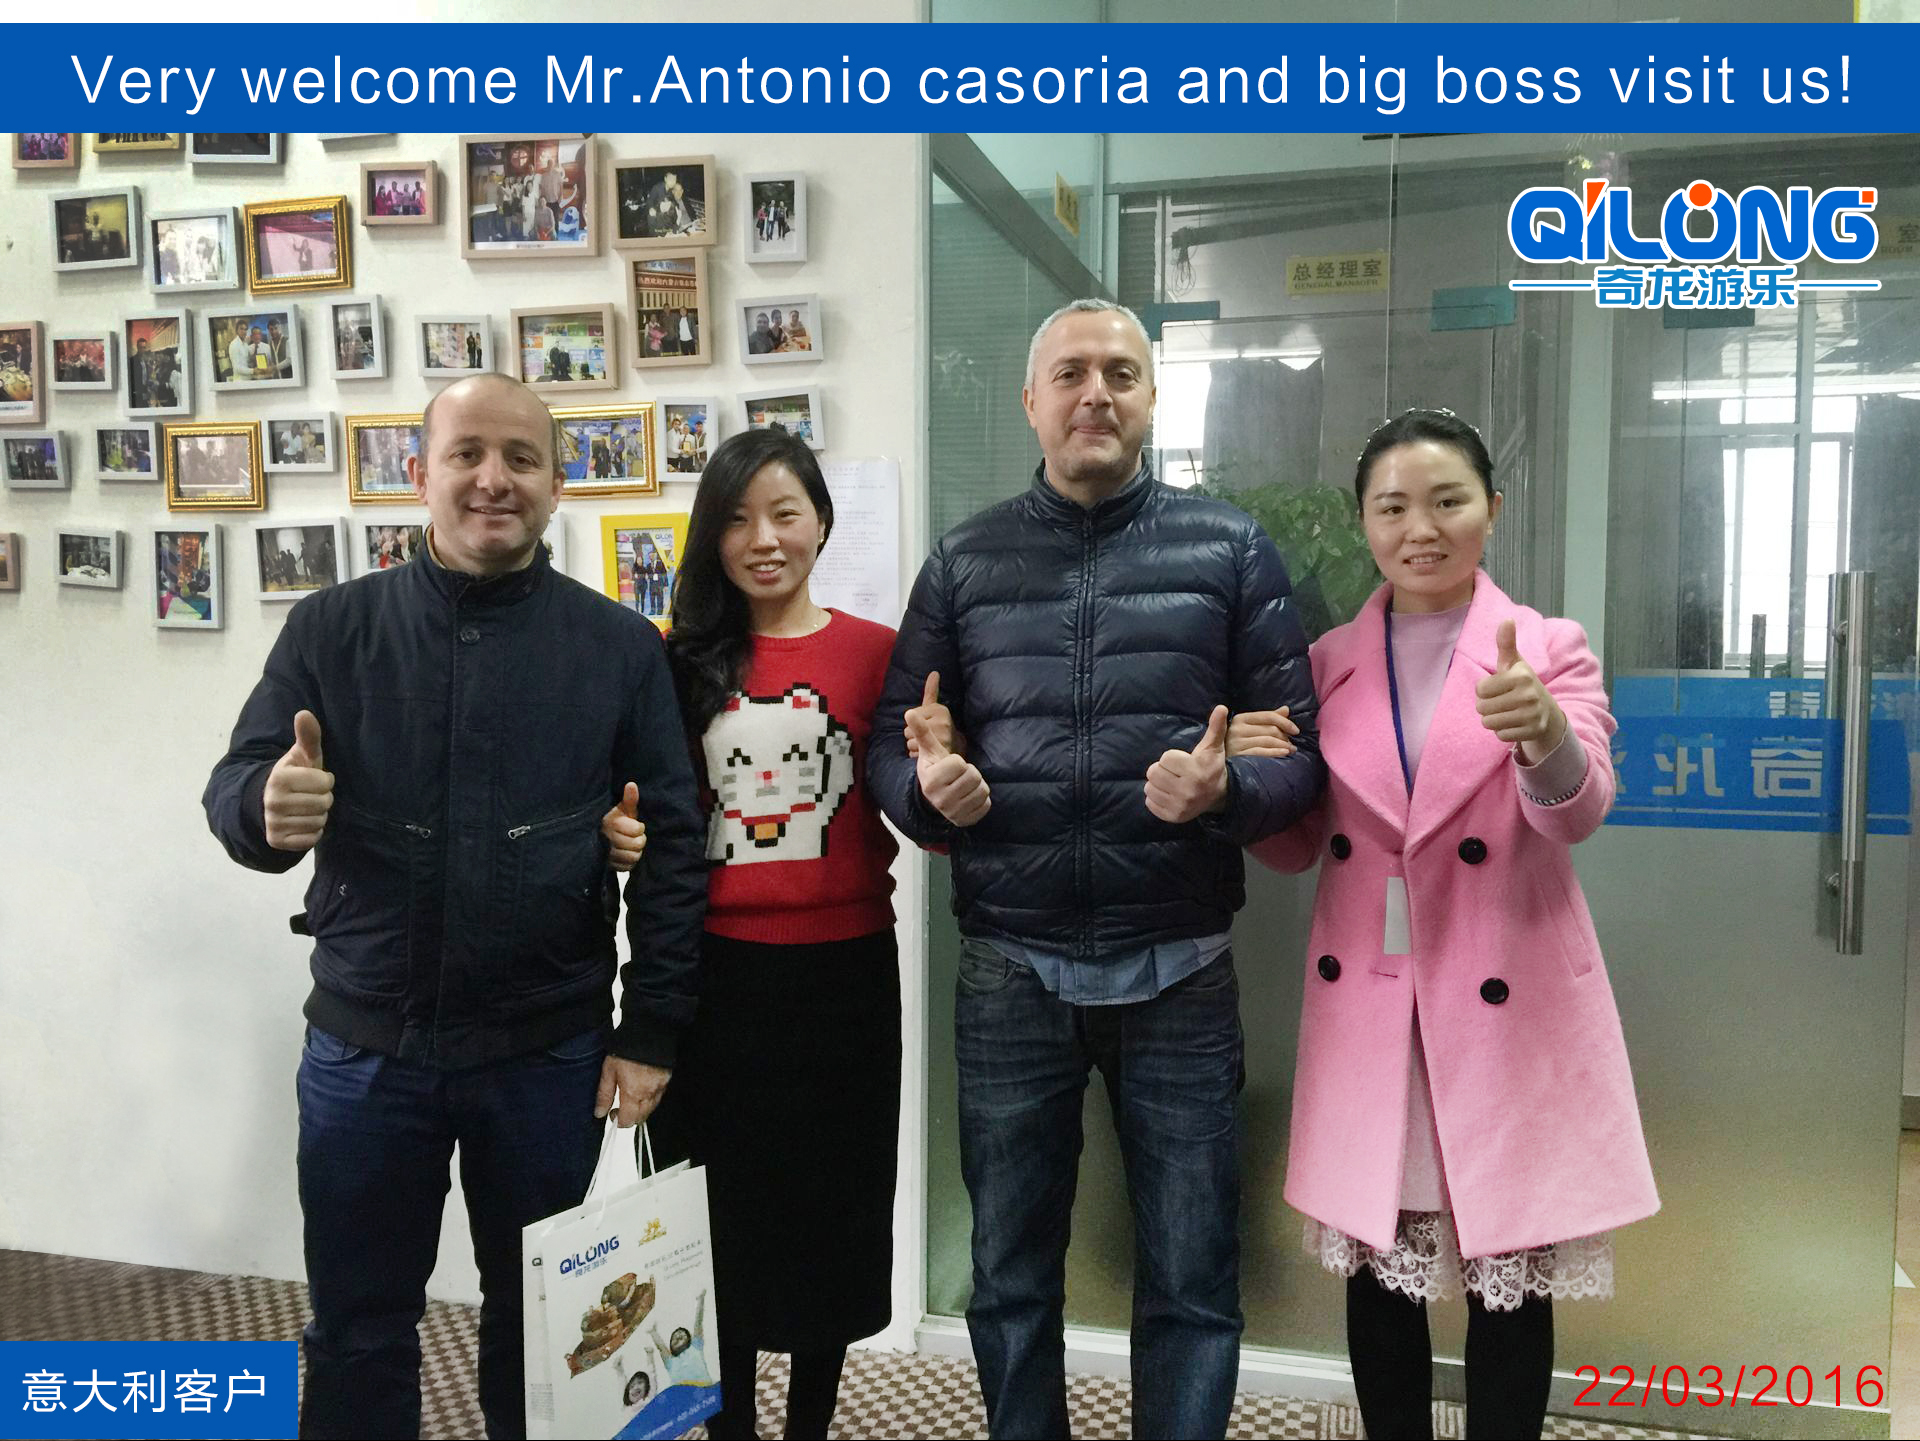 Italy customers visit us which met us on Guangzhou Fair.